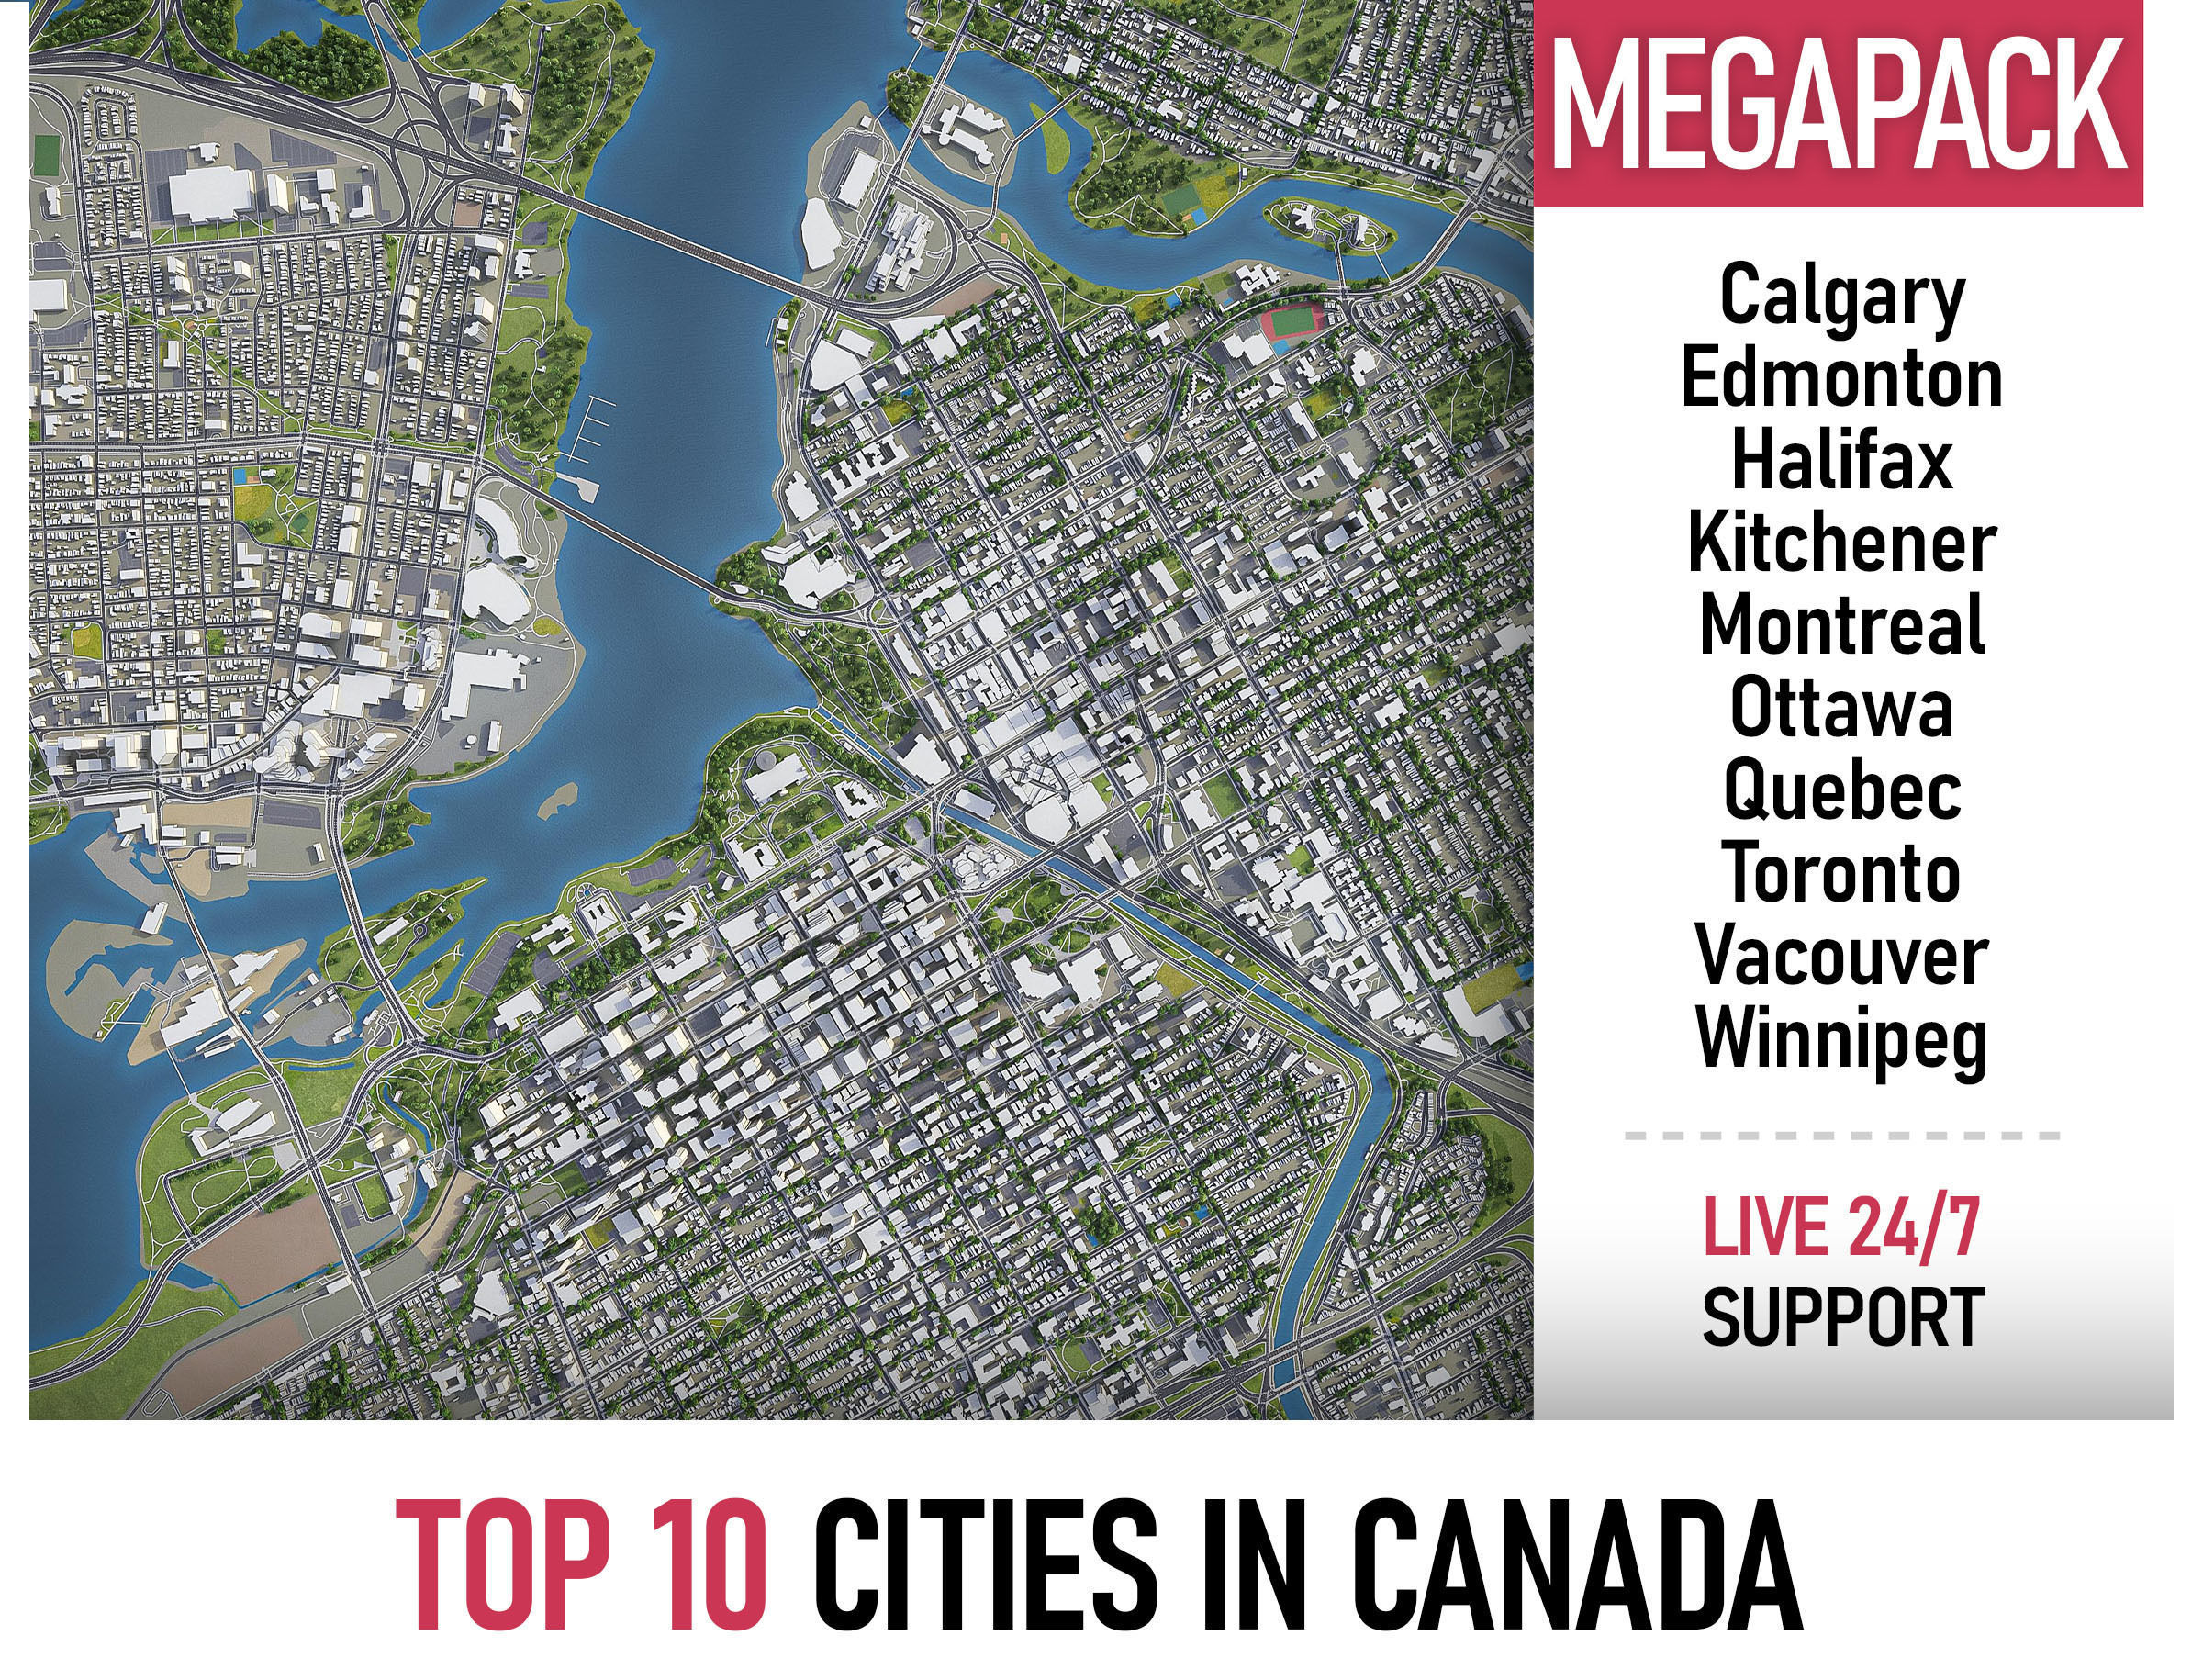 Top 10 Cities in Canada MEGAPACK